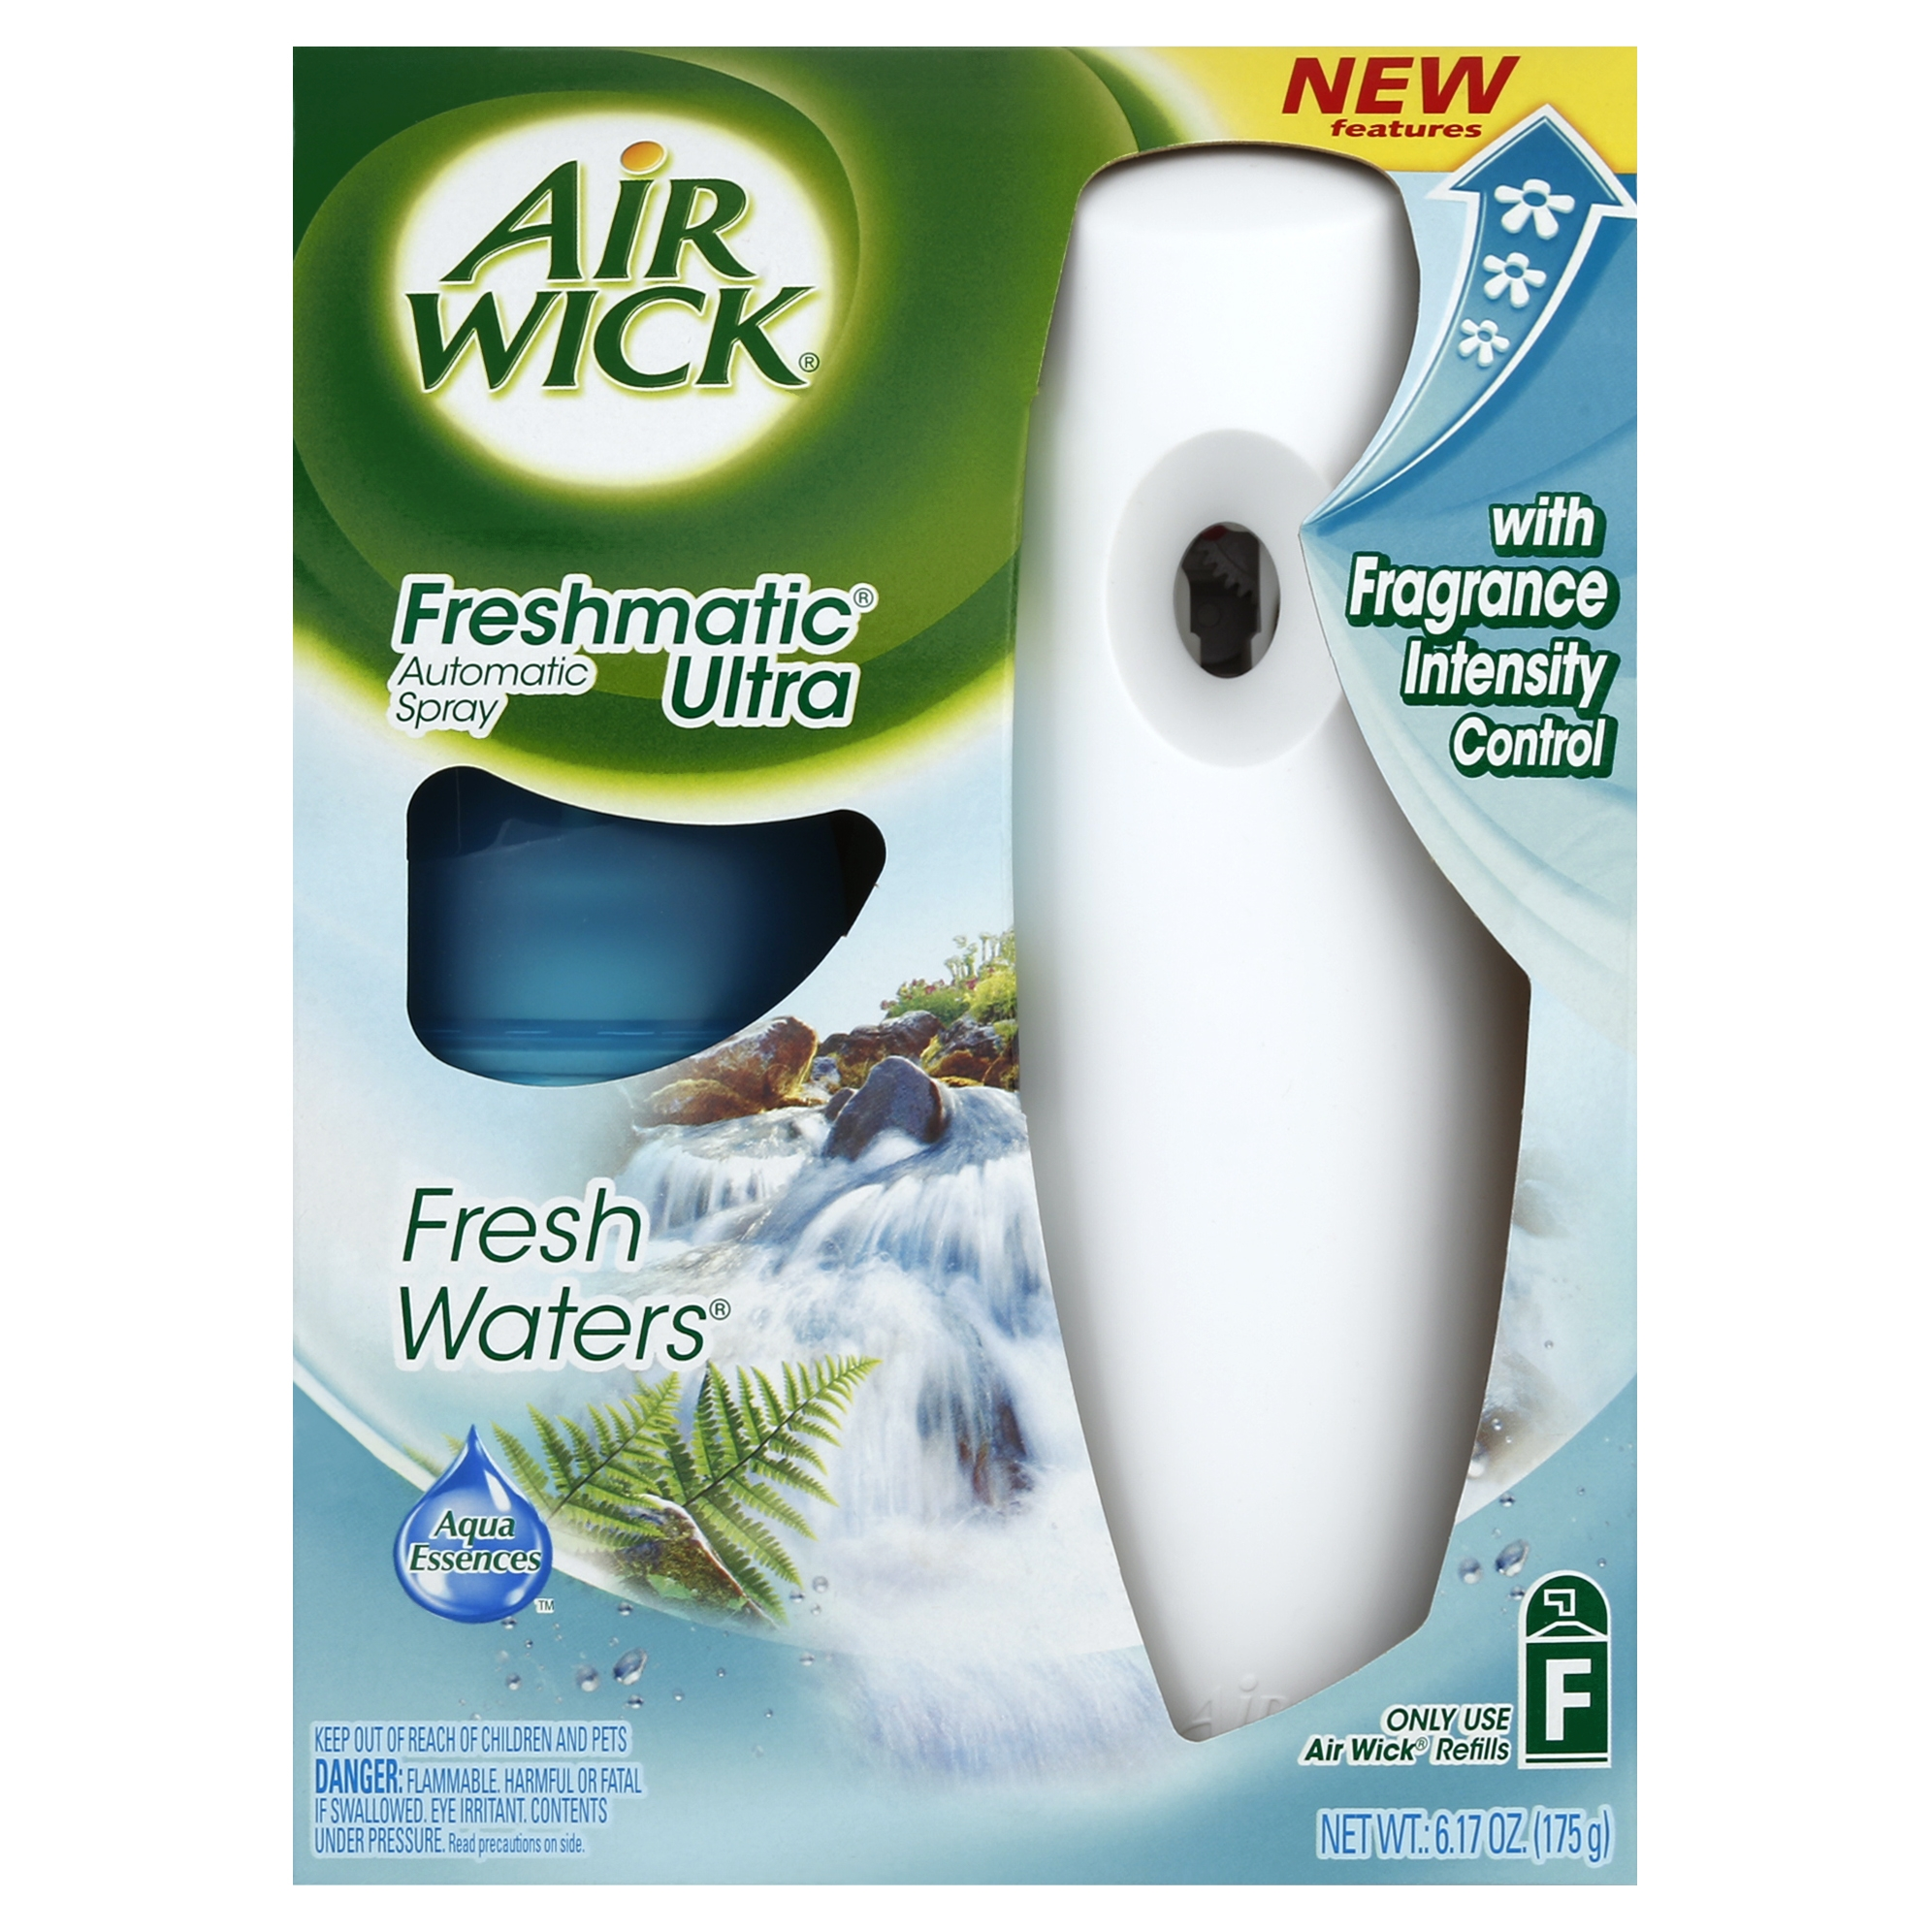 Air Wick Freshmatic Automatic Spray Air Freshener Starter Kit, Fresh Waters  Scent, 1 Count